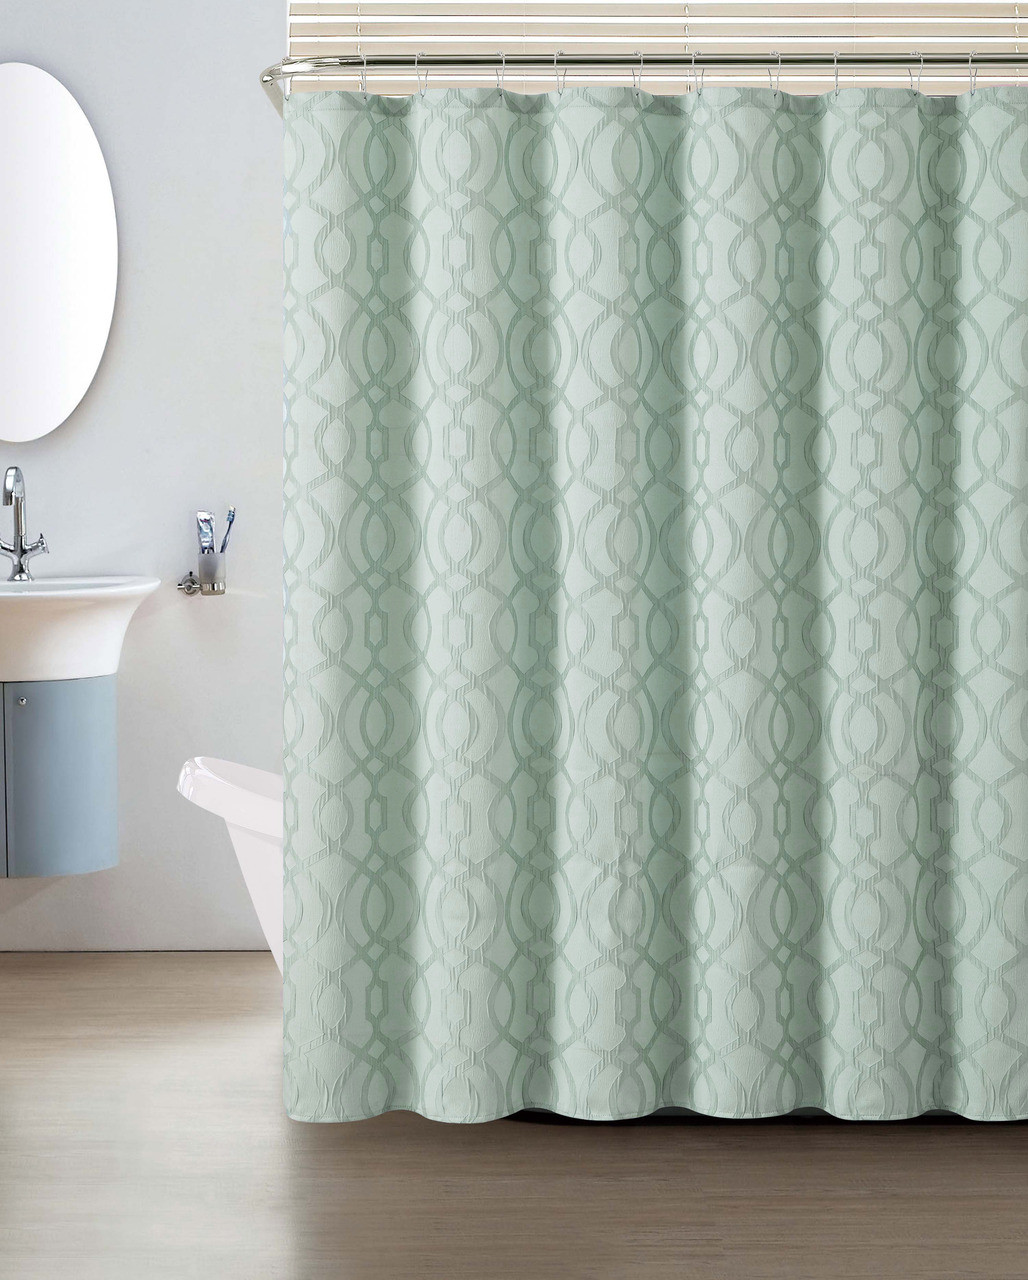 Blue crushed jacquard shower curtain macon geometric for Blue and silver bathroom decor